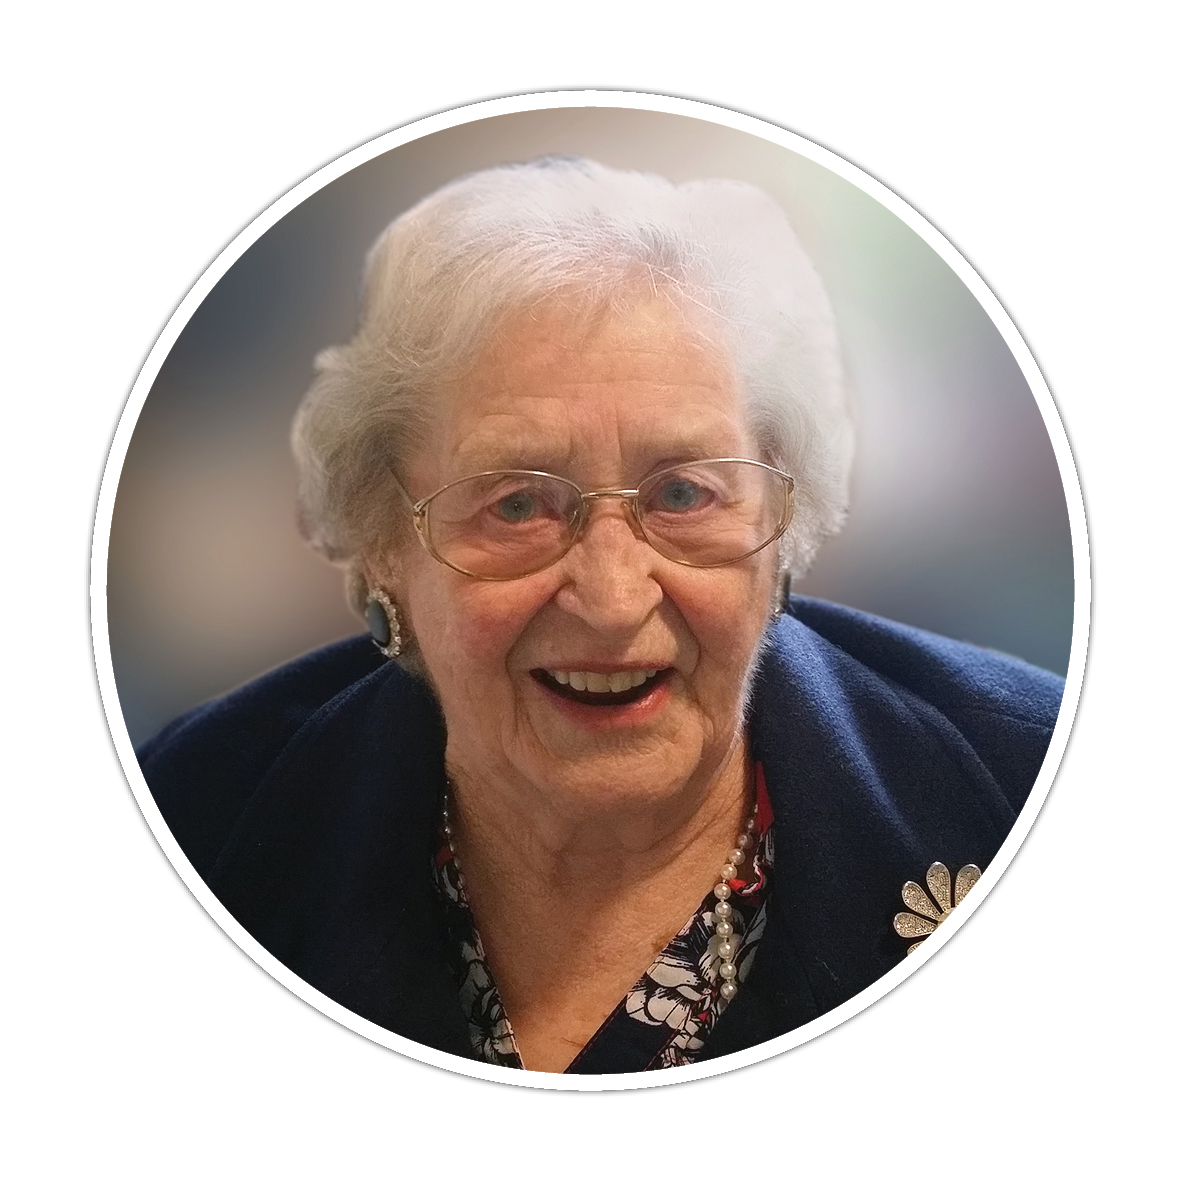 "JACKSON, Margaret Gwenyth (Gwen, nee Hughes)    On June 28, 2019 peacefully at Yvette Williams Retirement Village; aged 91 years.   Dearly loved wife of the late Gordon, loved Mum and mother-in-law of Avis and the late Geoff, Bruce and Anna, Peter and Kit, Philip and Ofelia, Jenny and Eric, loved nana of Kimberly; Amanda, Eleanor, James, and Matthew; Rowena, and Aaron; and Cameron.  ""Sadly Missed""   A service to celebrate Gwen's life will be held in Hilltop Chapel, 183 Middleton Road, Dunedin at 1:30 PM on Wednesday, July 3, followed by private cremation."